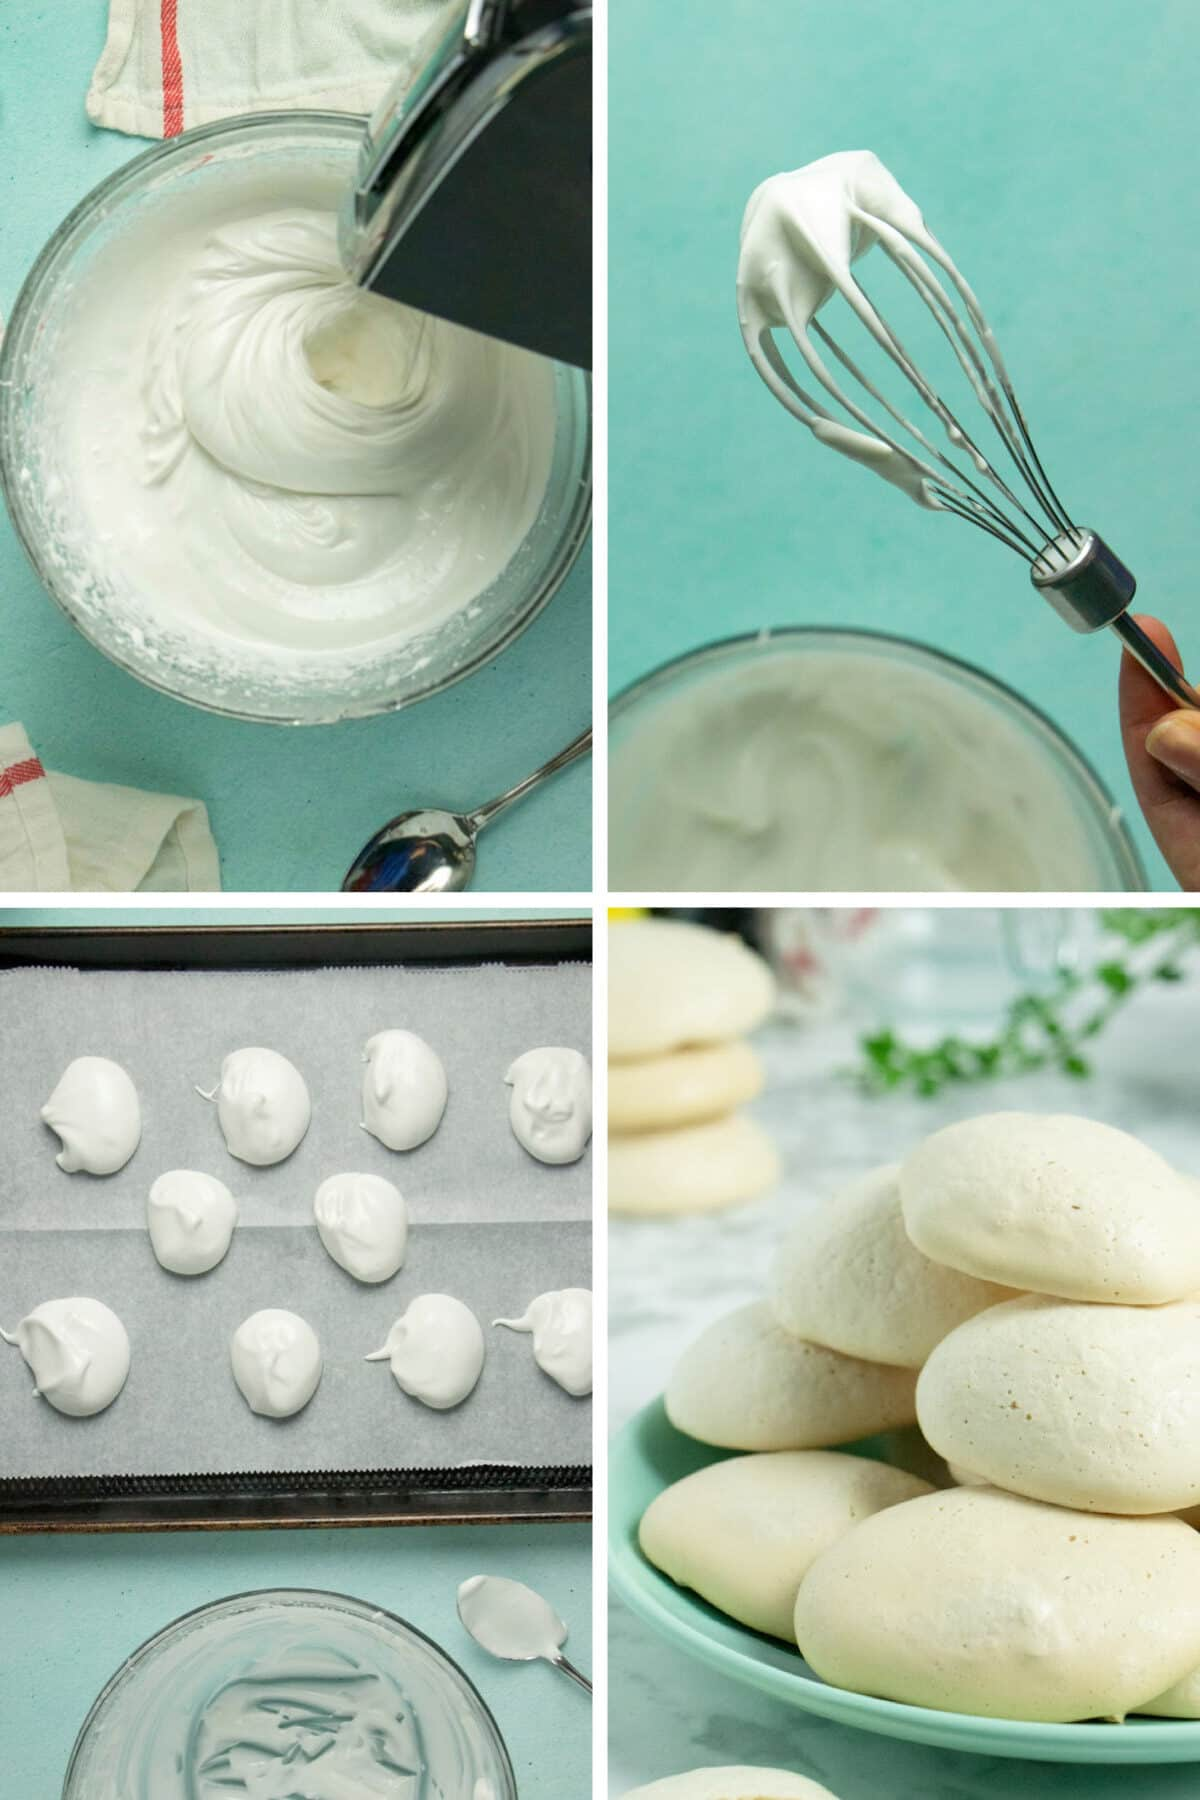 image collage of whipping aquafaba, soft peaks on a beater, uncooked meringues on a baking sheet, and baked meringues on a plate